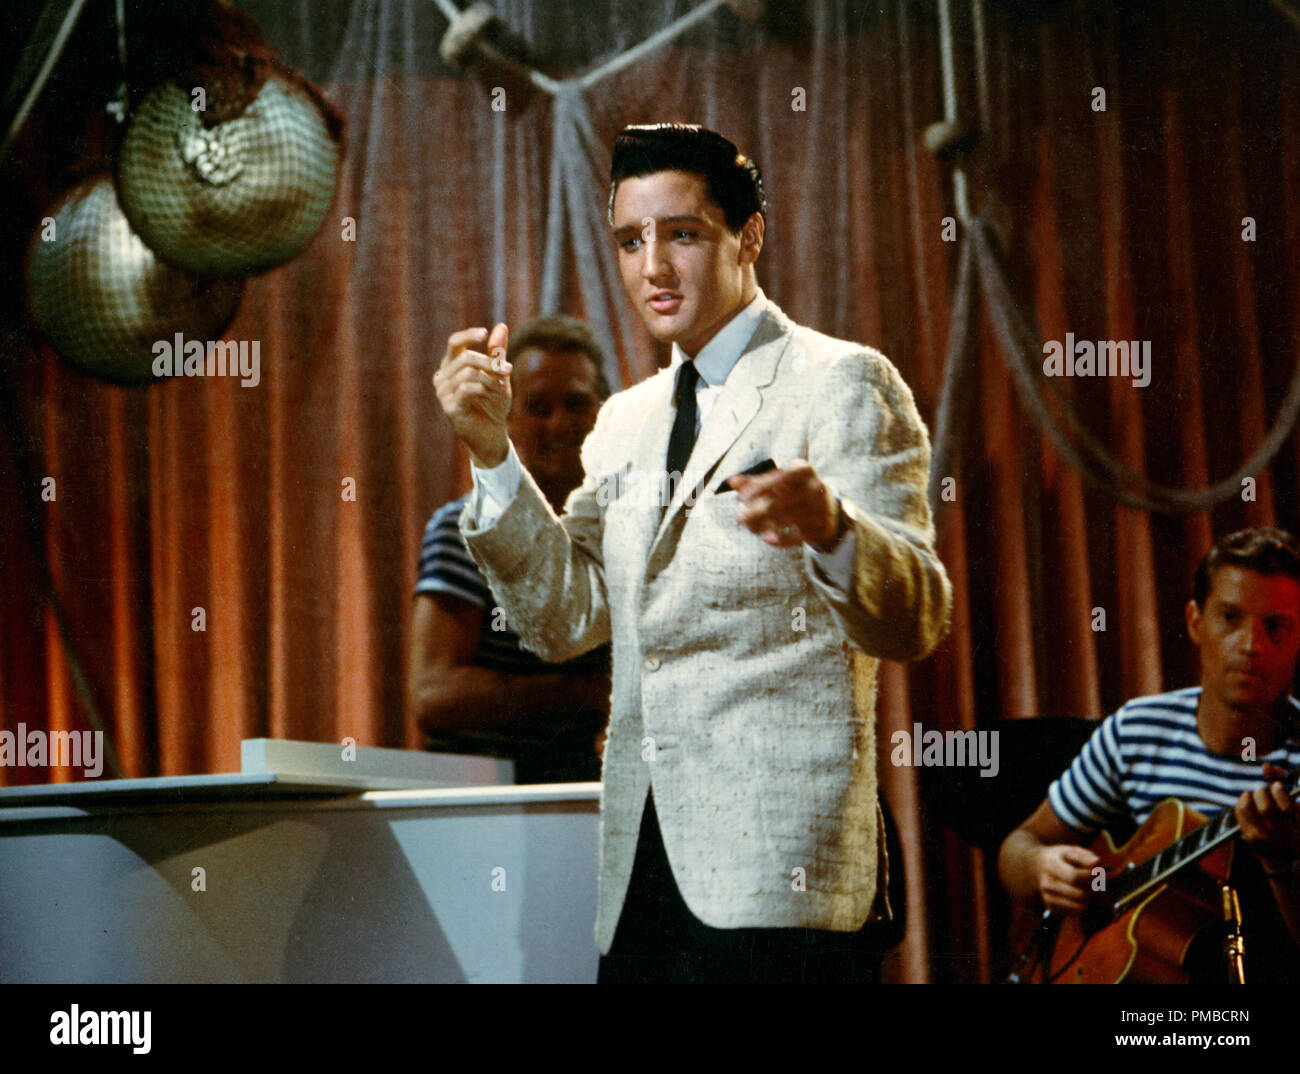 "1962 ELVIS PRESLEY in the MOVIES /""GIRLS GIRLS GIRLS/"" PHOTO on the set 02"